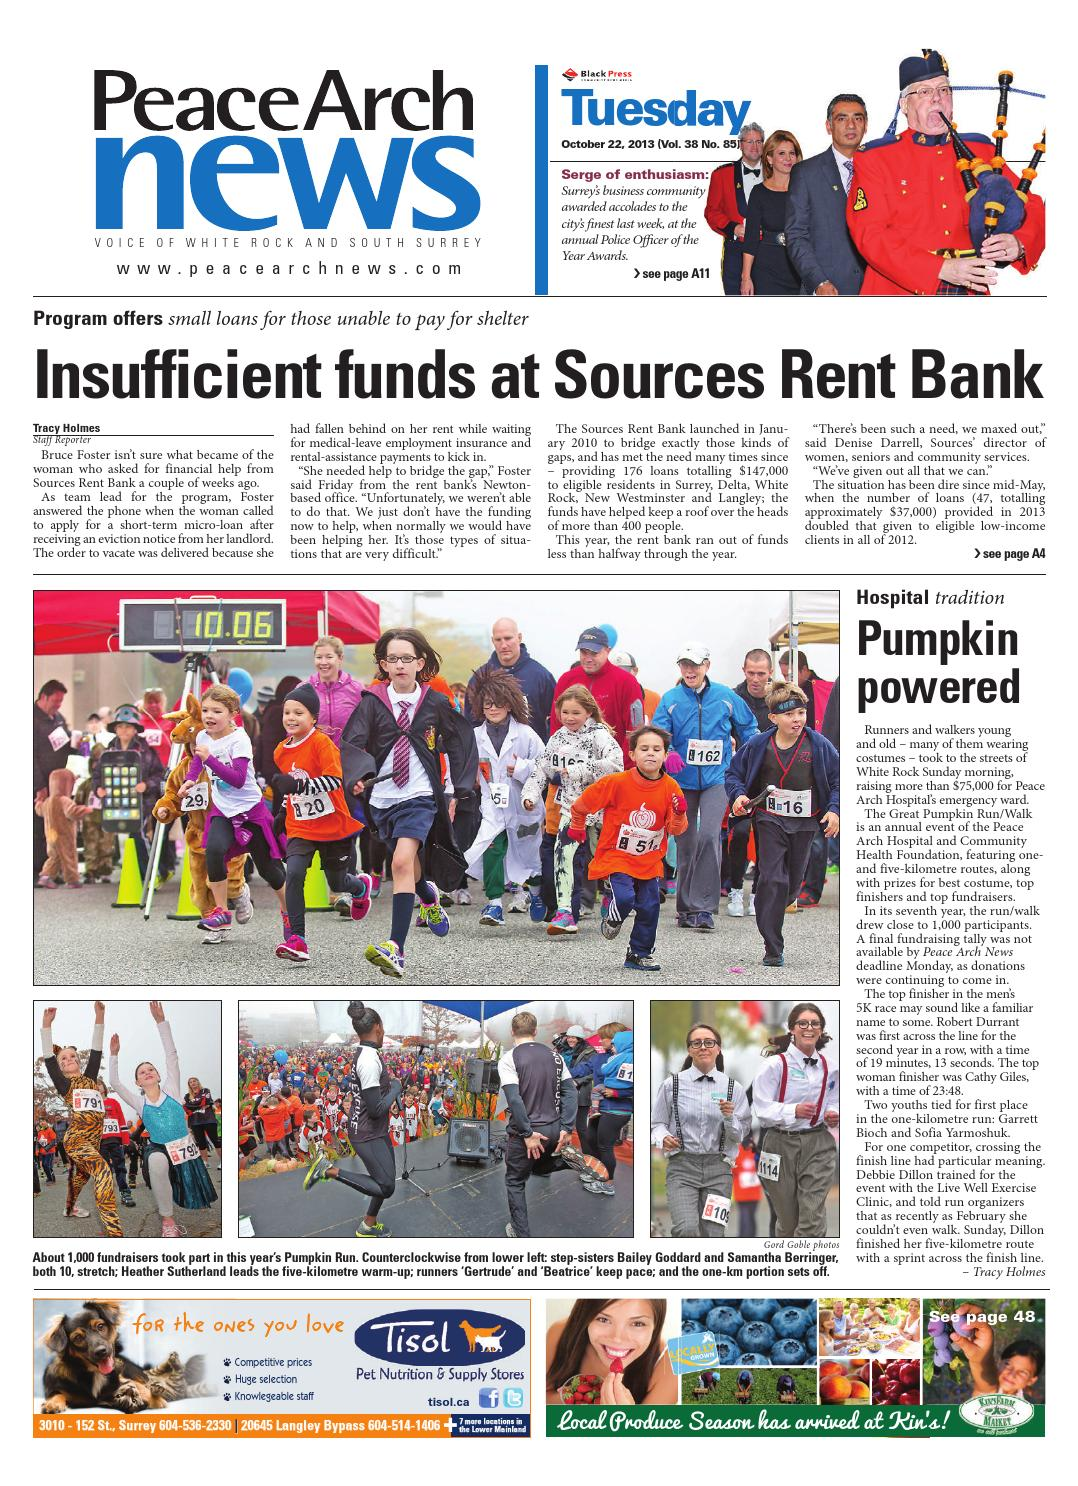 Peace arch news october 22 2013 by black press issuu fandeluxe Gallery